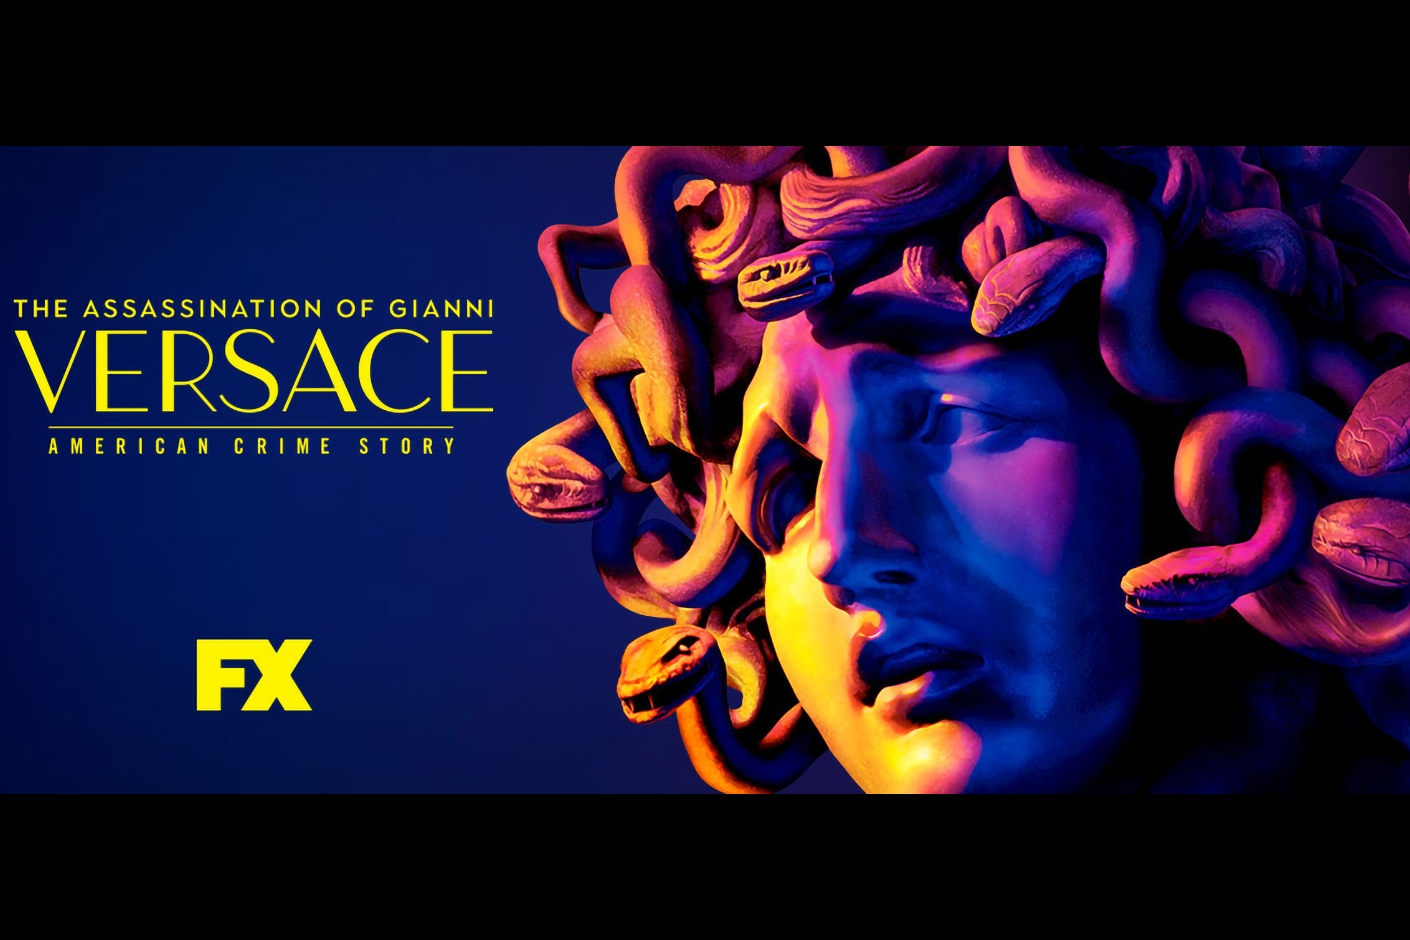 newyork - The Assassination of Gianni Versace:  American Crime Story - Page 19 Fyc-versace-1180x520